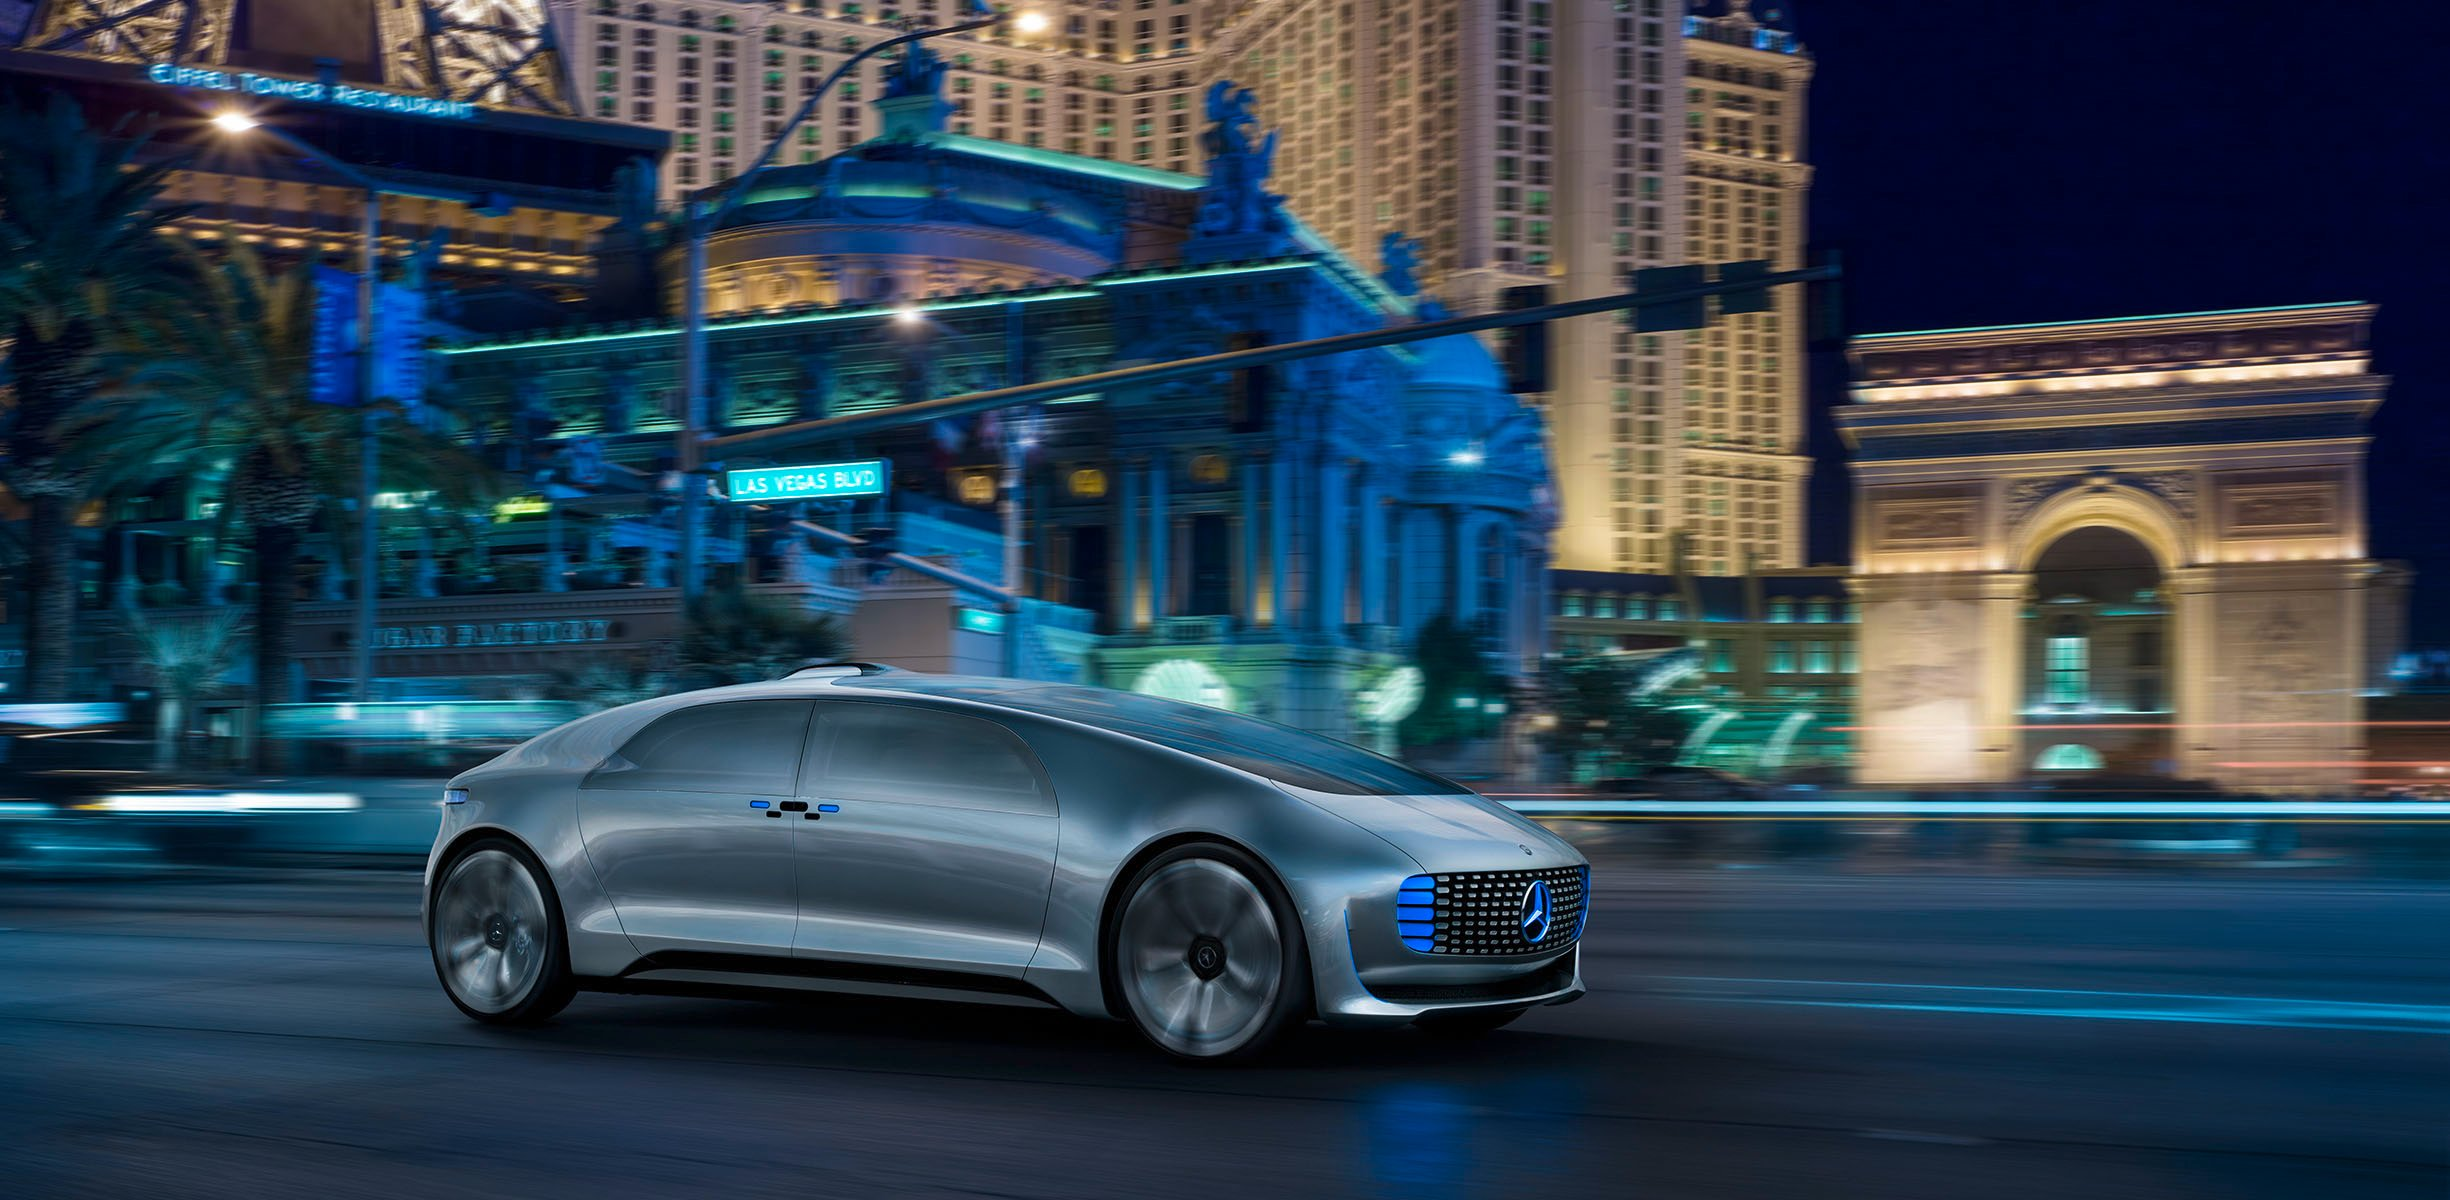 Mercedes benz f015 luxury in motion autonomous concept for Mercedes benz f